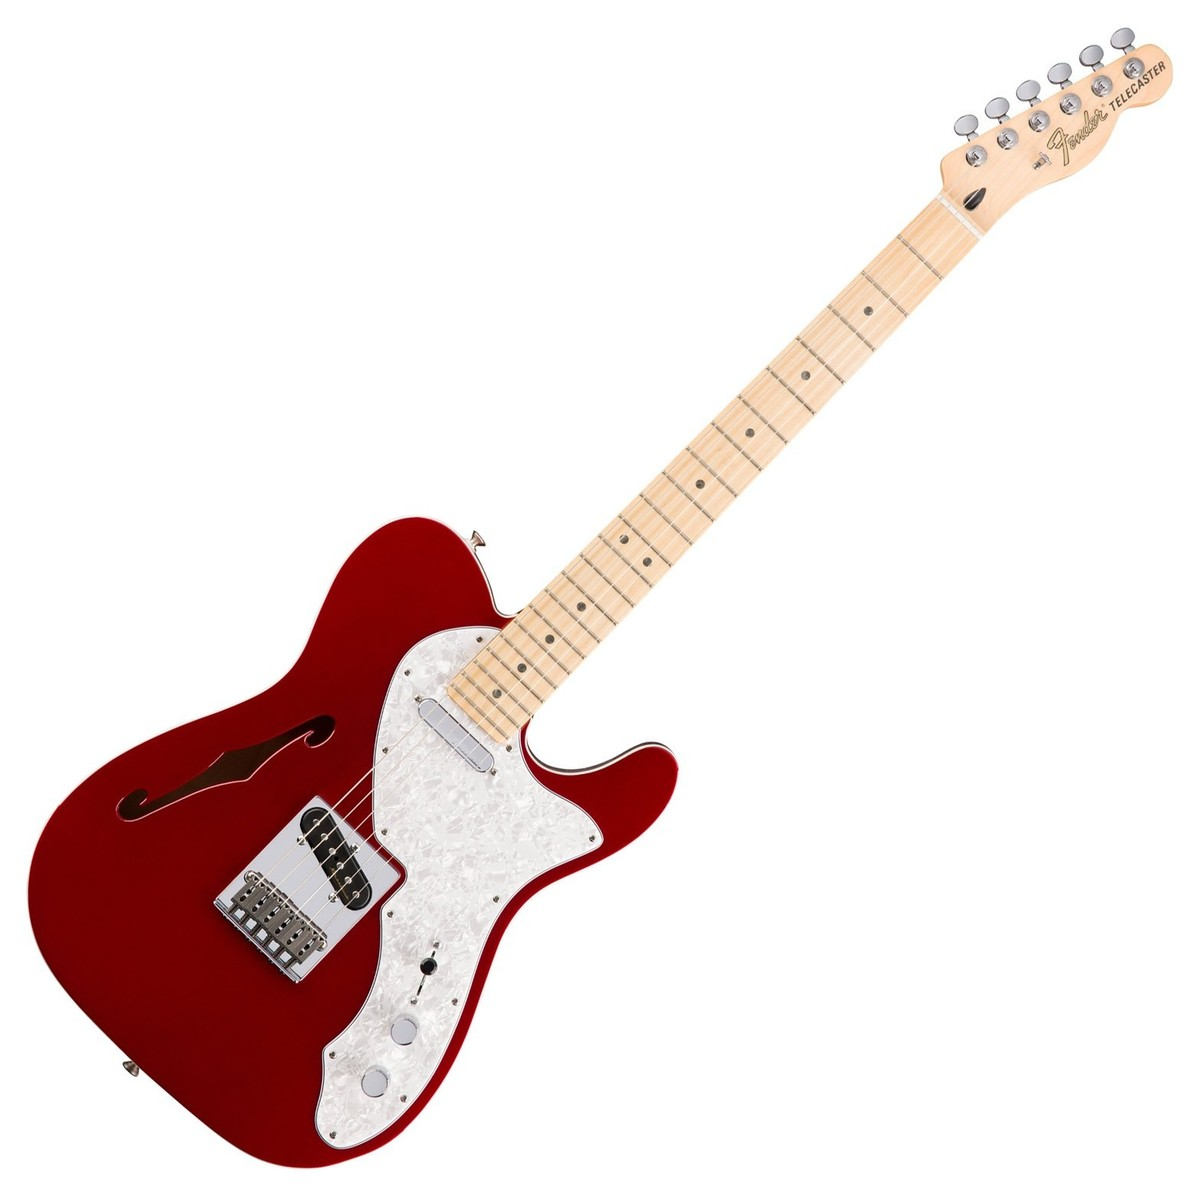 fender deluxe telecaster thinline electric guitar candy apple red at. Black Bedroom Furniture Sets. Home Design Ideas